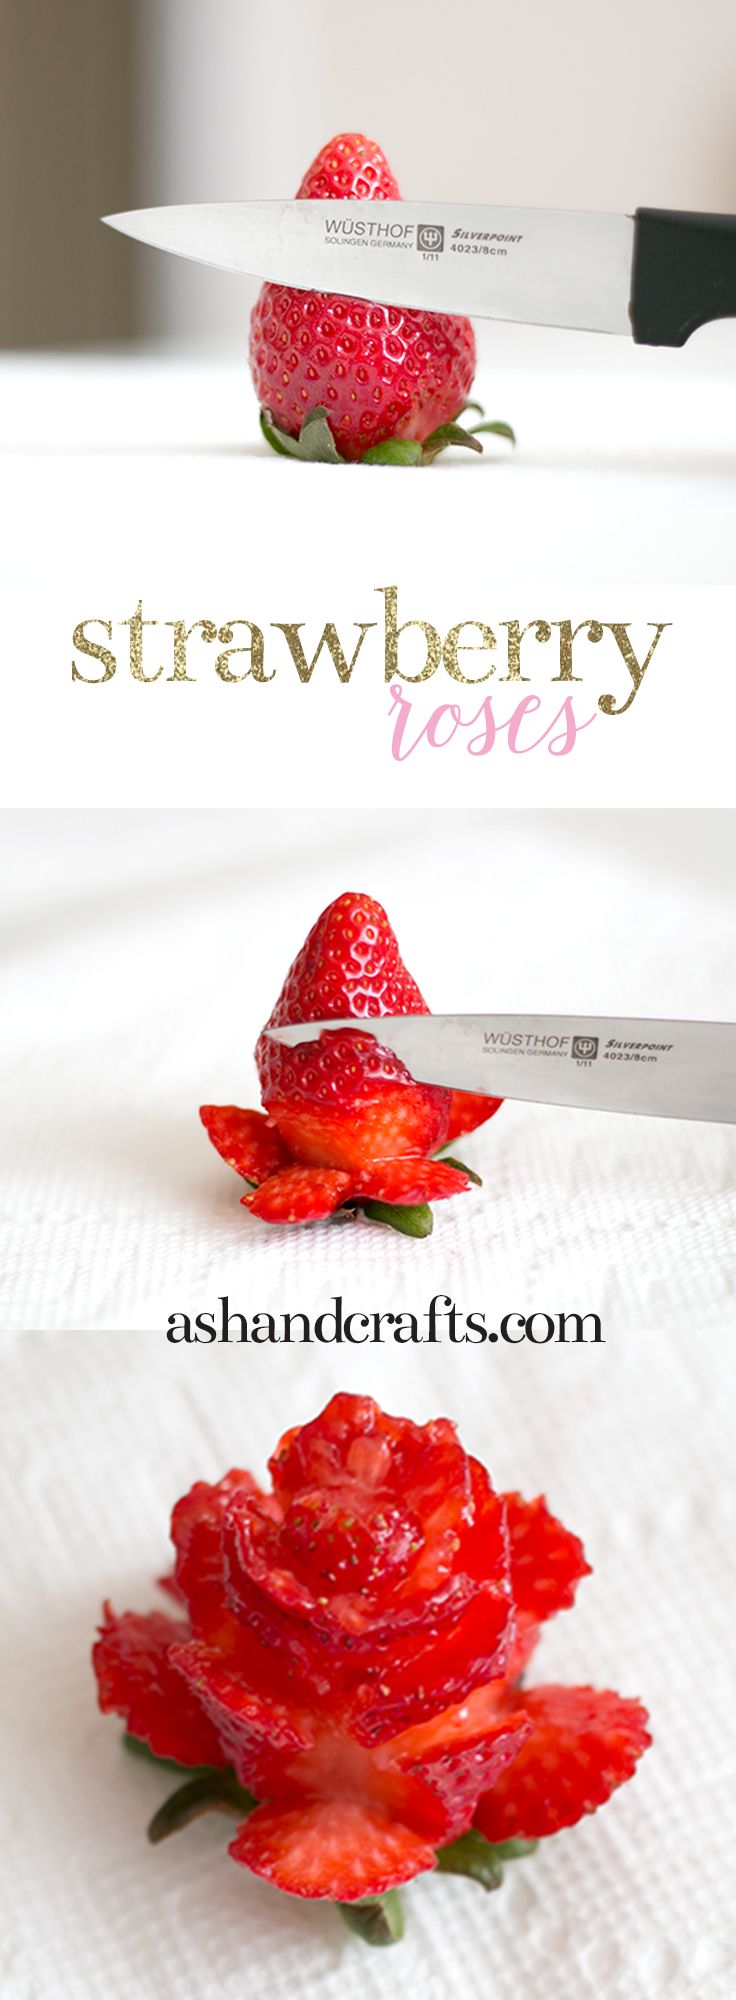 Learn how to cut strawberries into roses. ashandcrafts.com°°